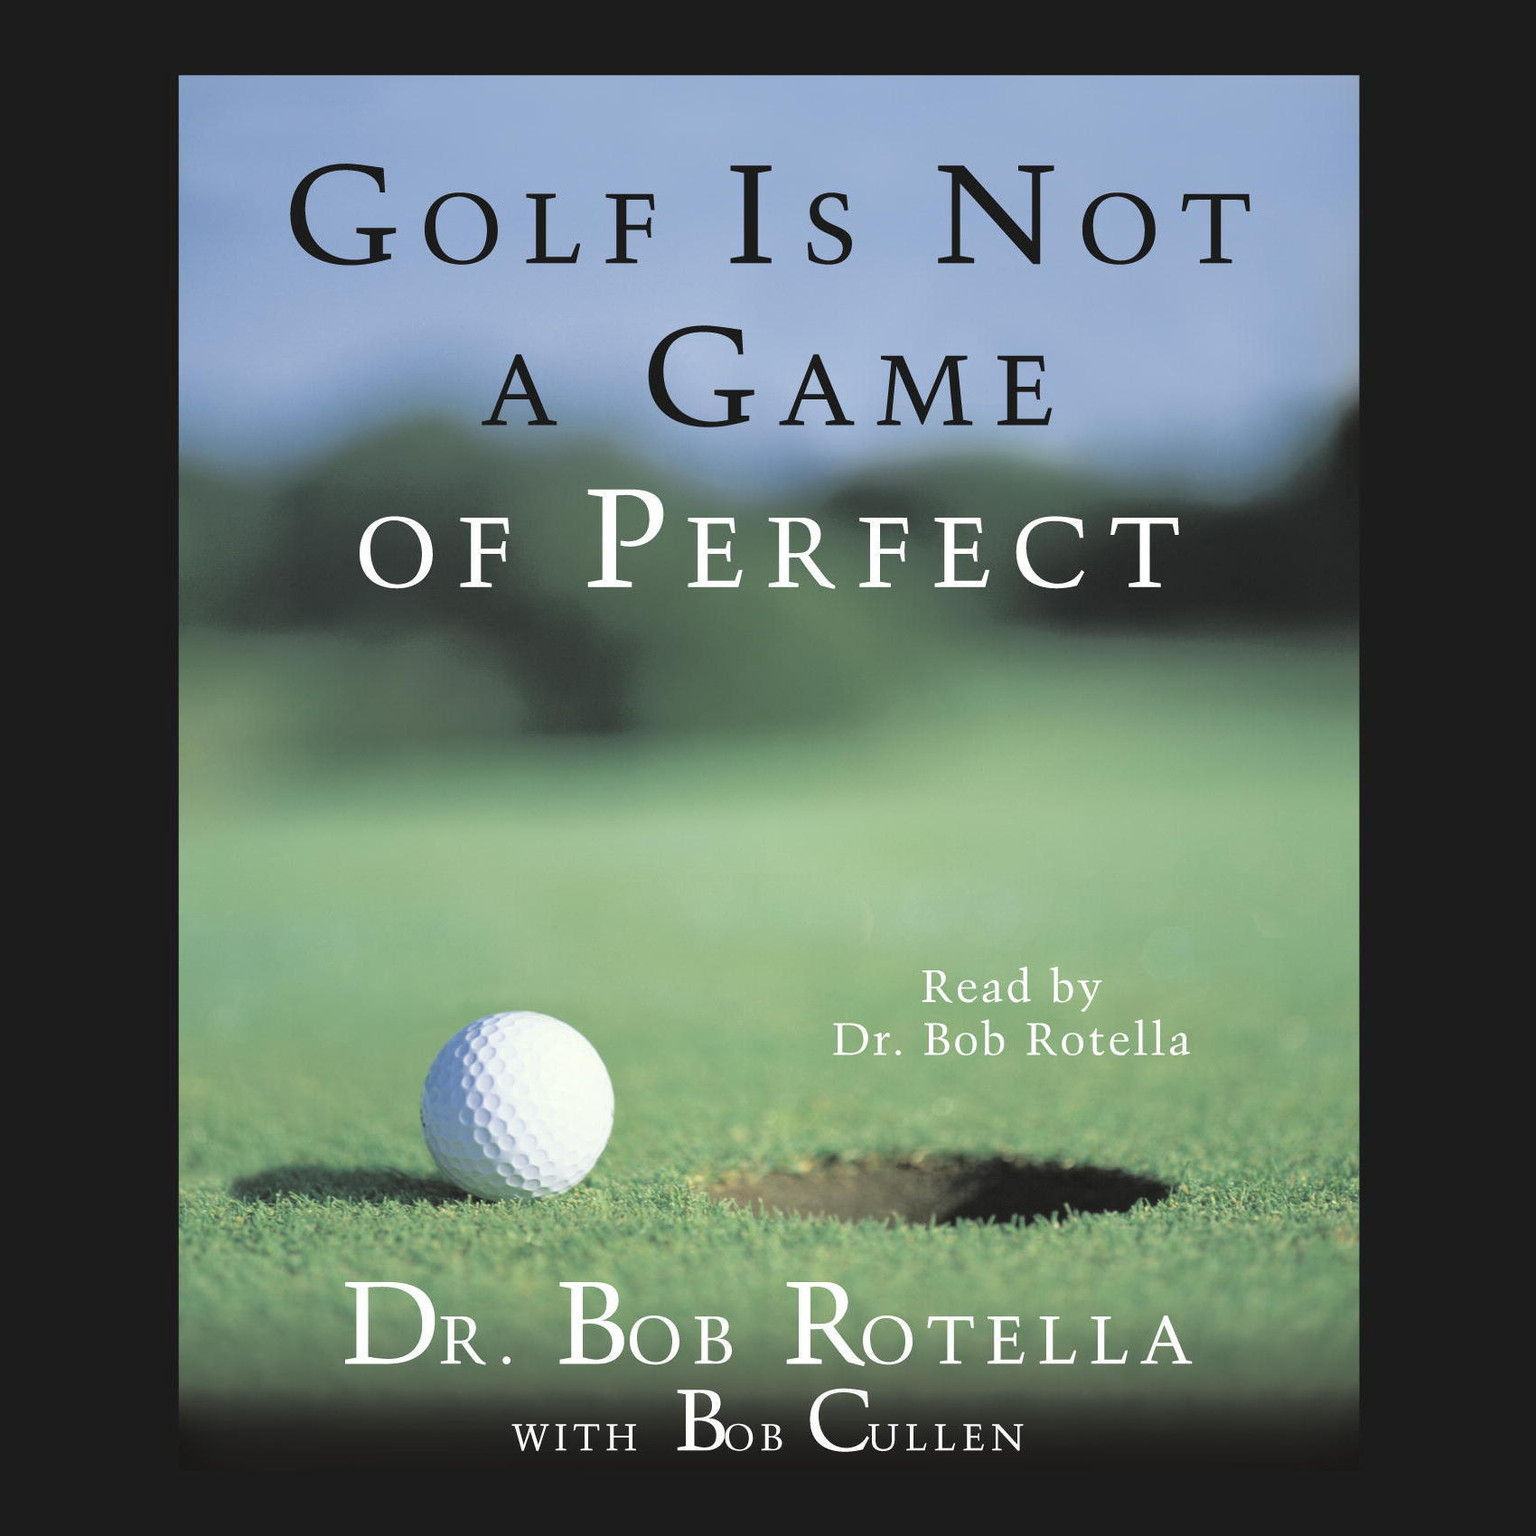 Printable Golf Is Not A Game Of Perfect Audiobook Cover Art